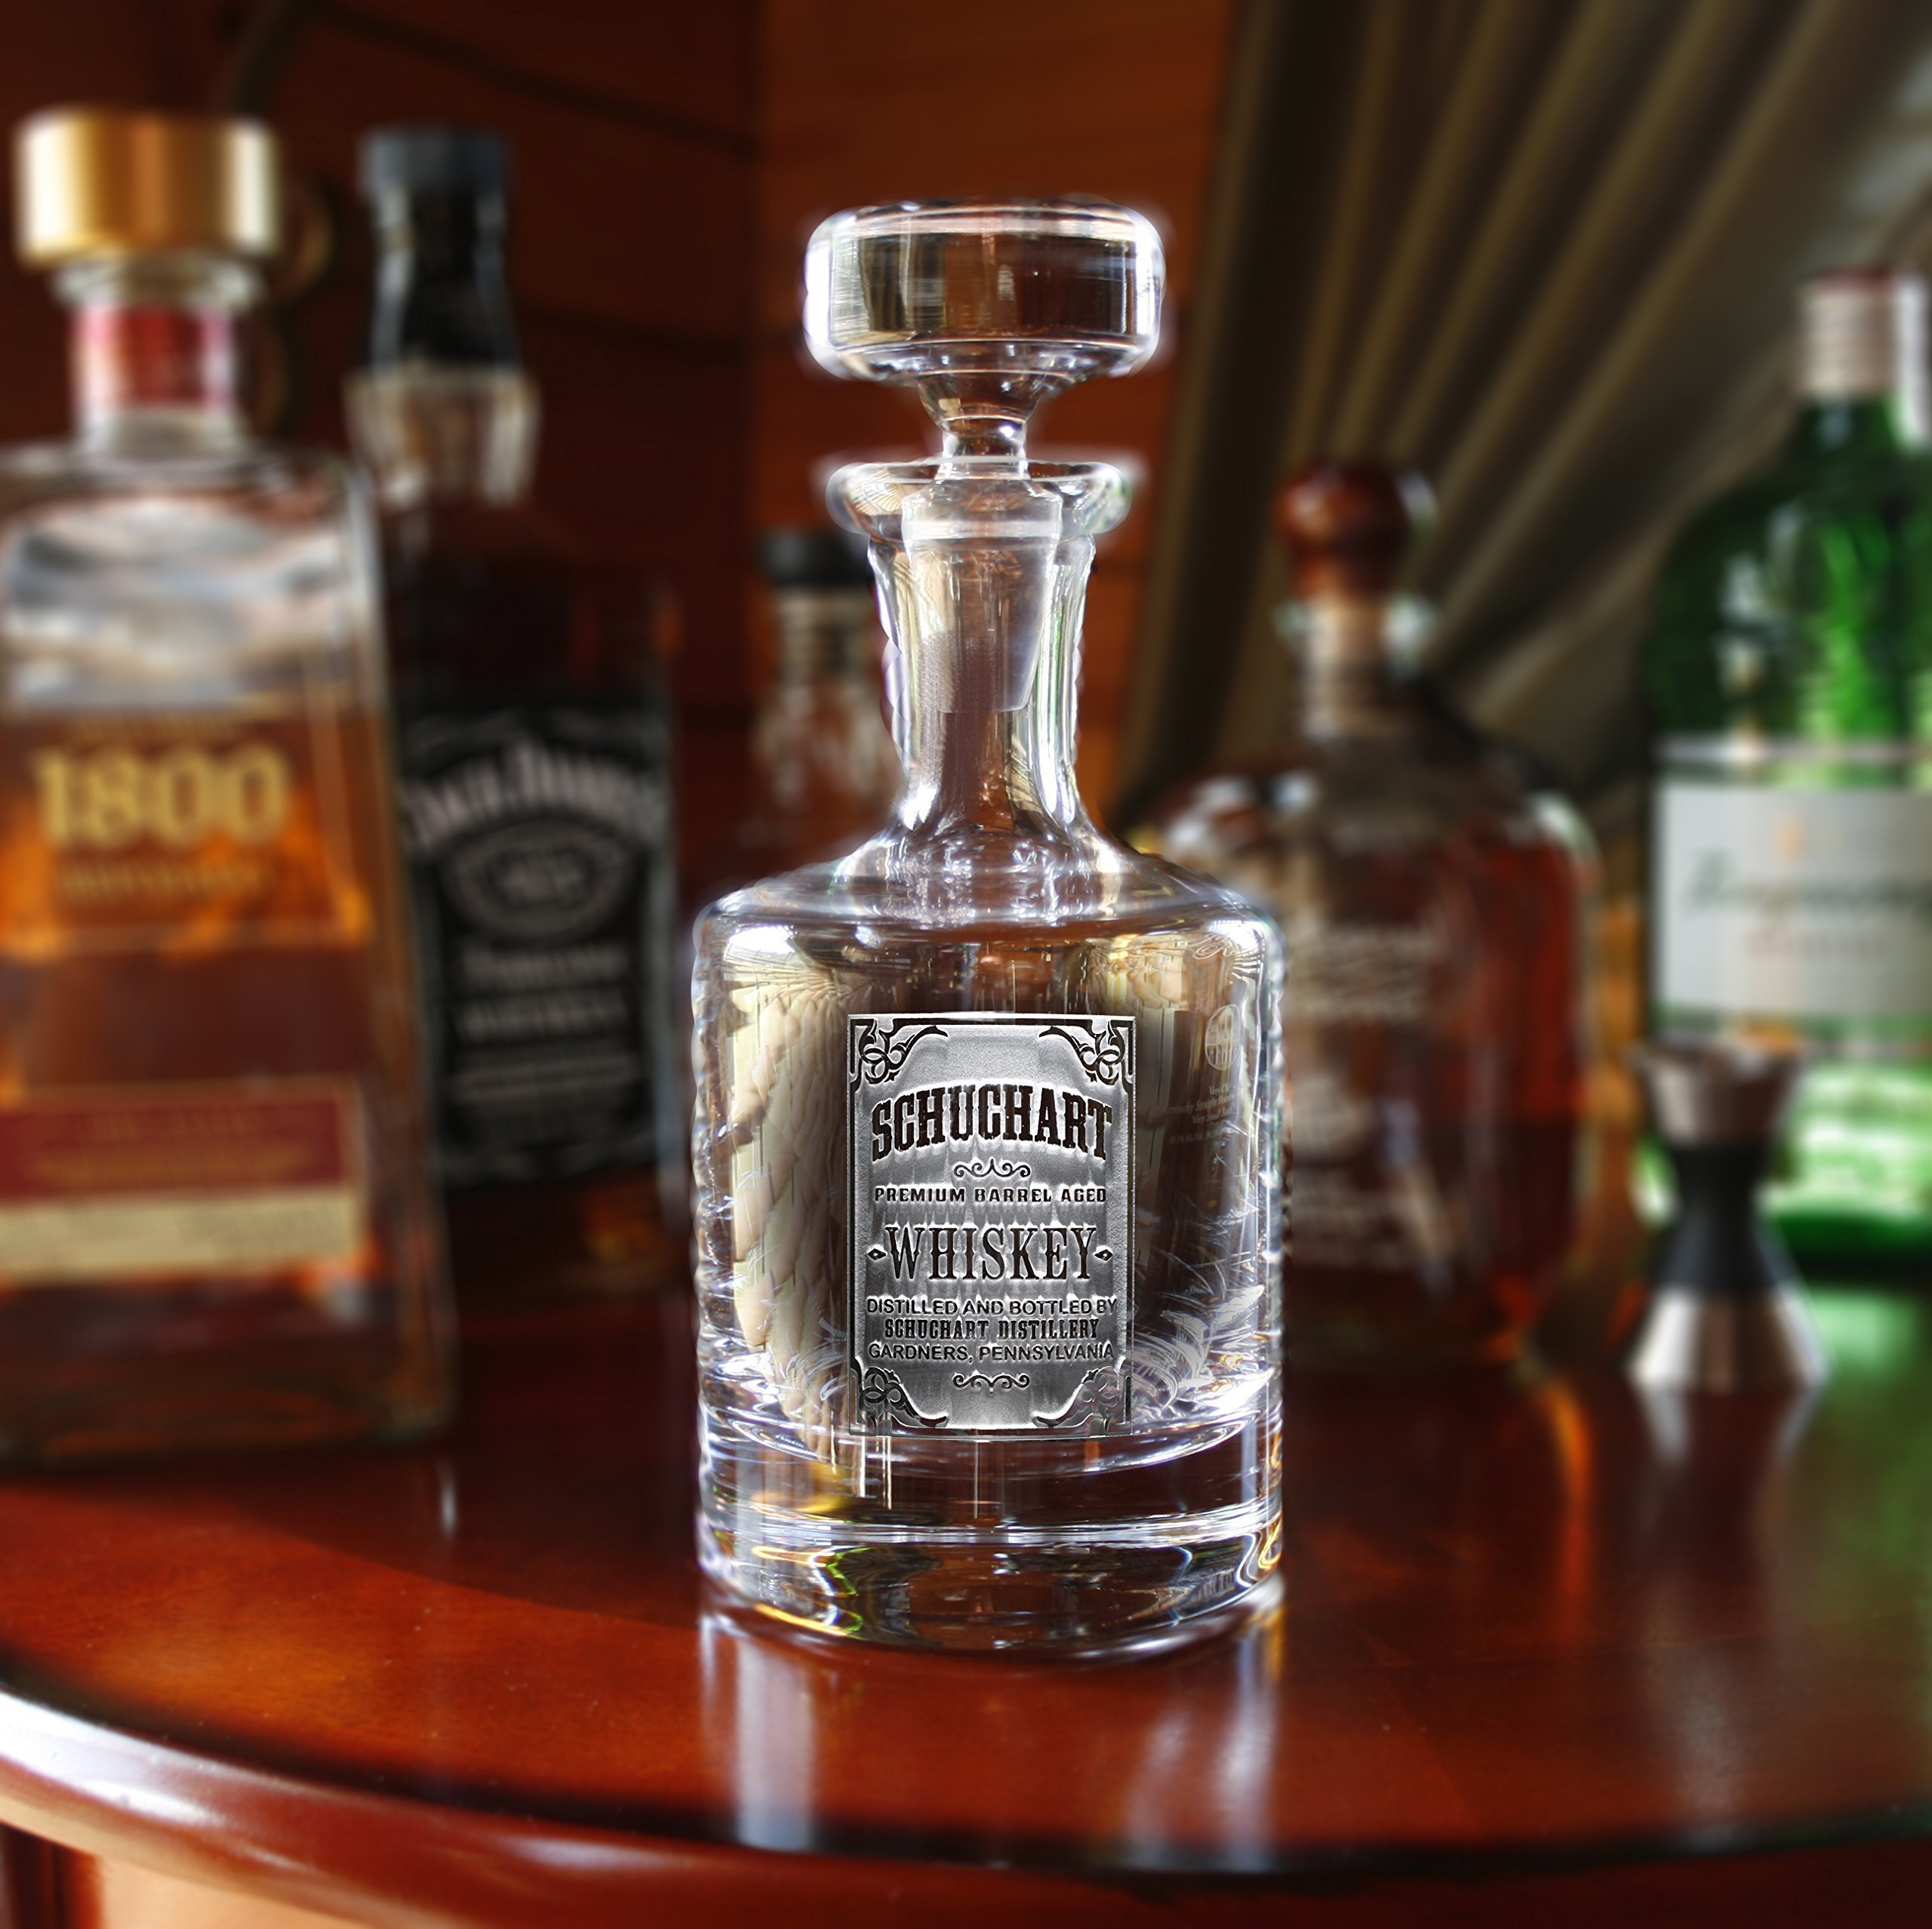 Engraved Decanter for Whiskey with Whiskey Label